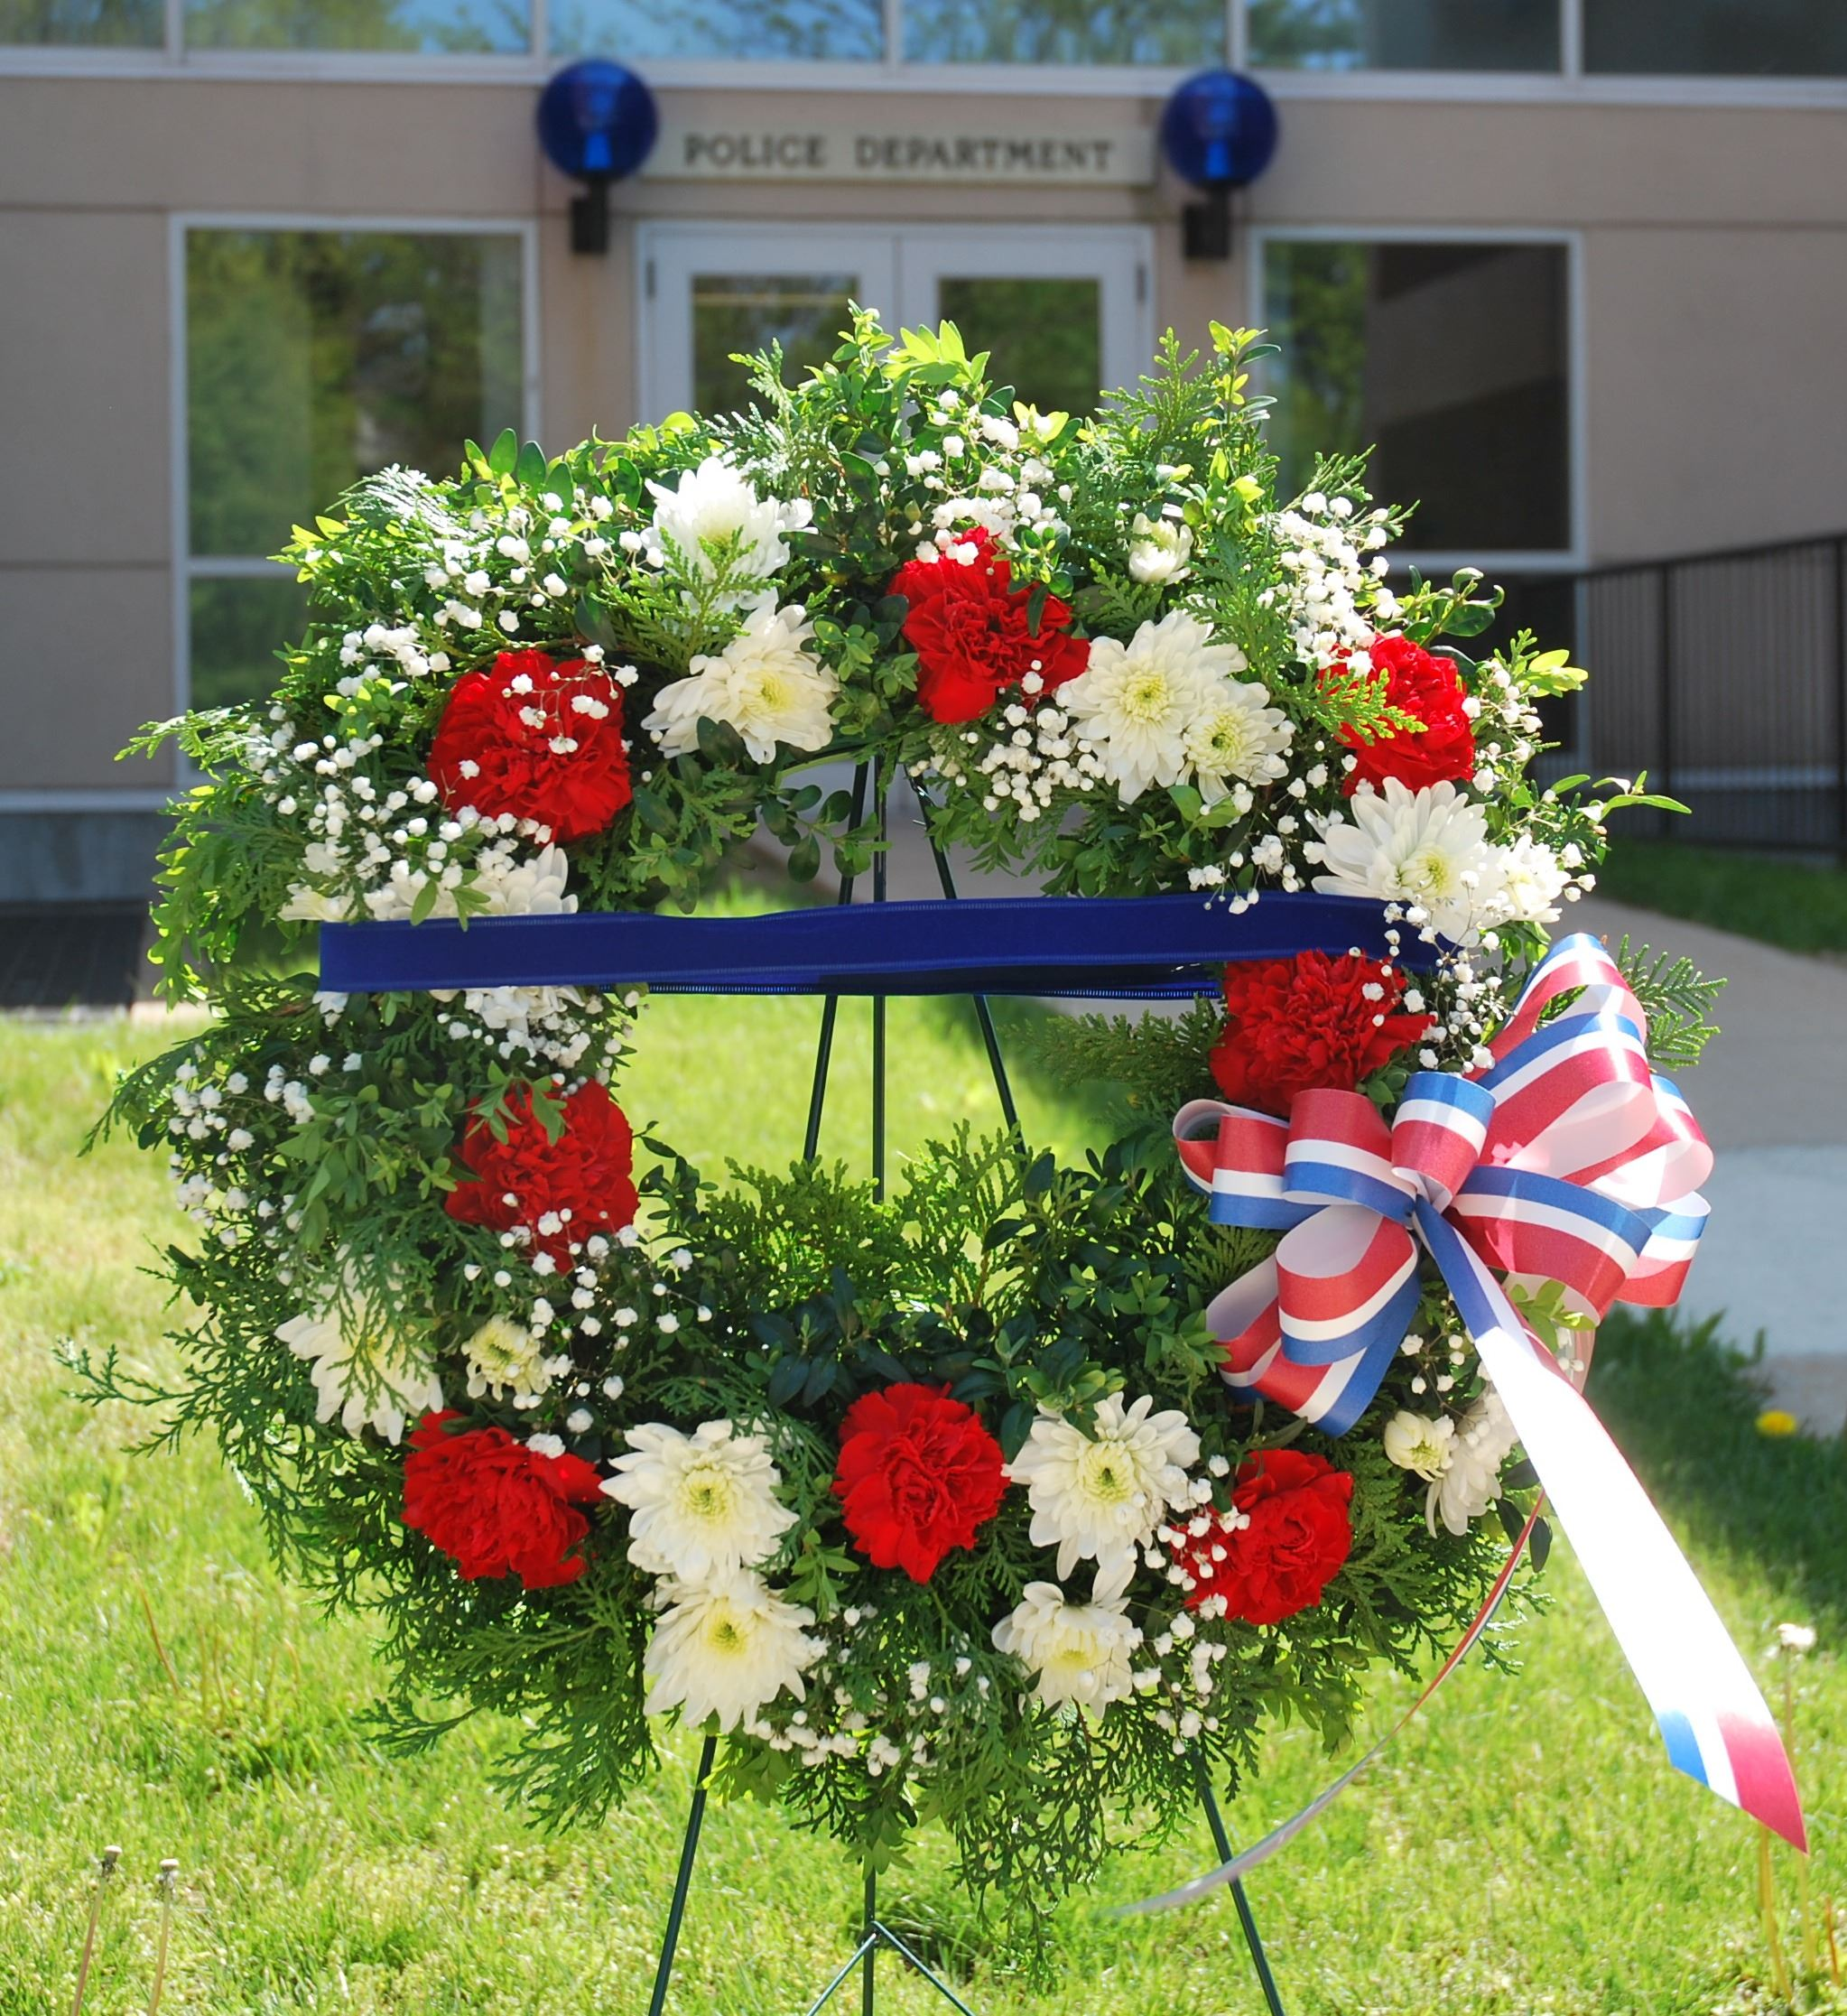 Wreath presented to the Police Department 2